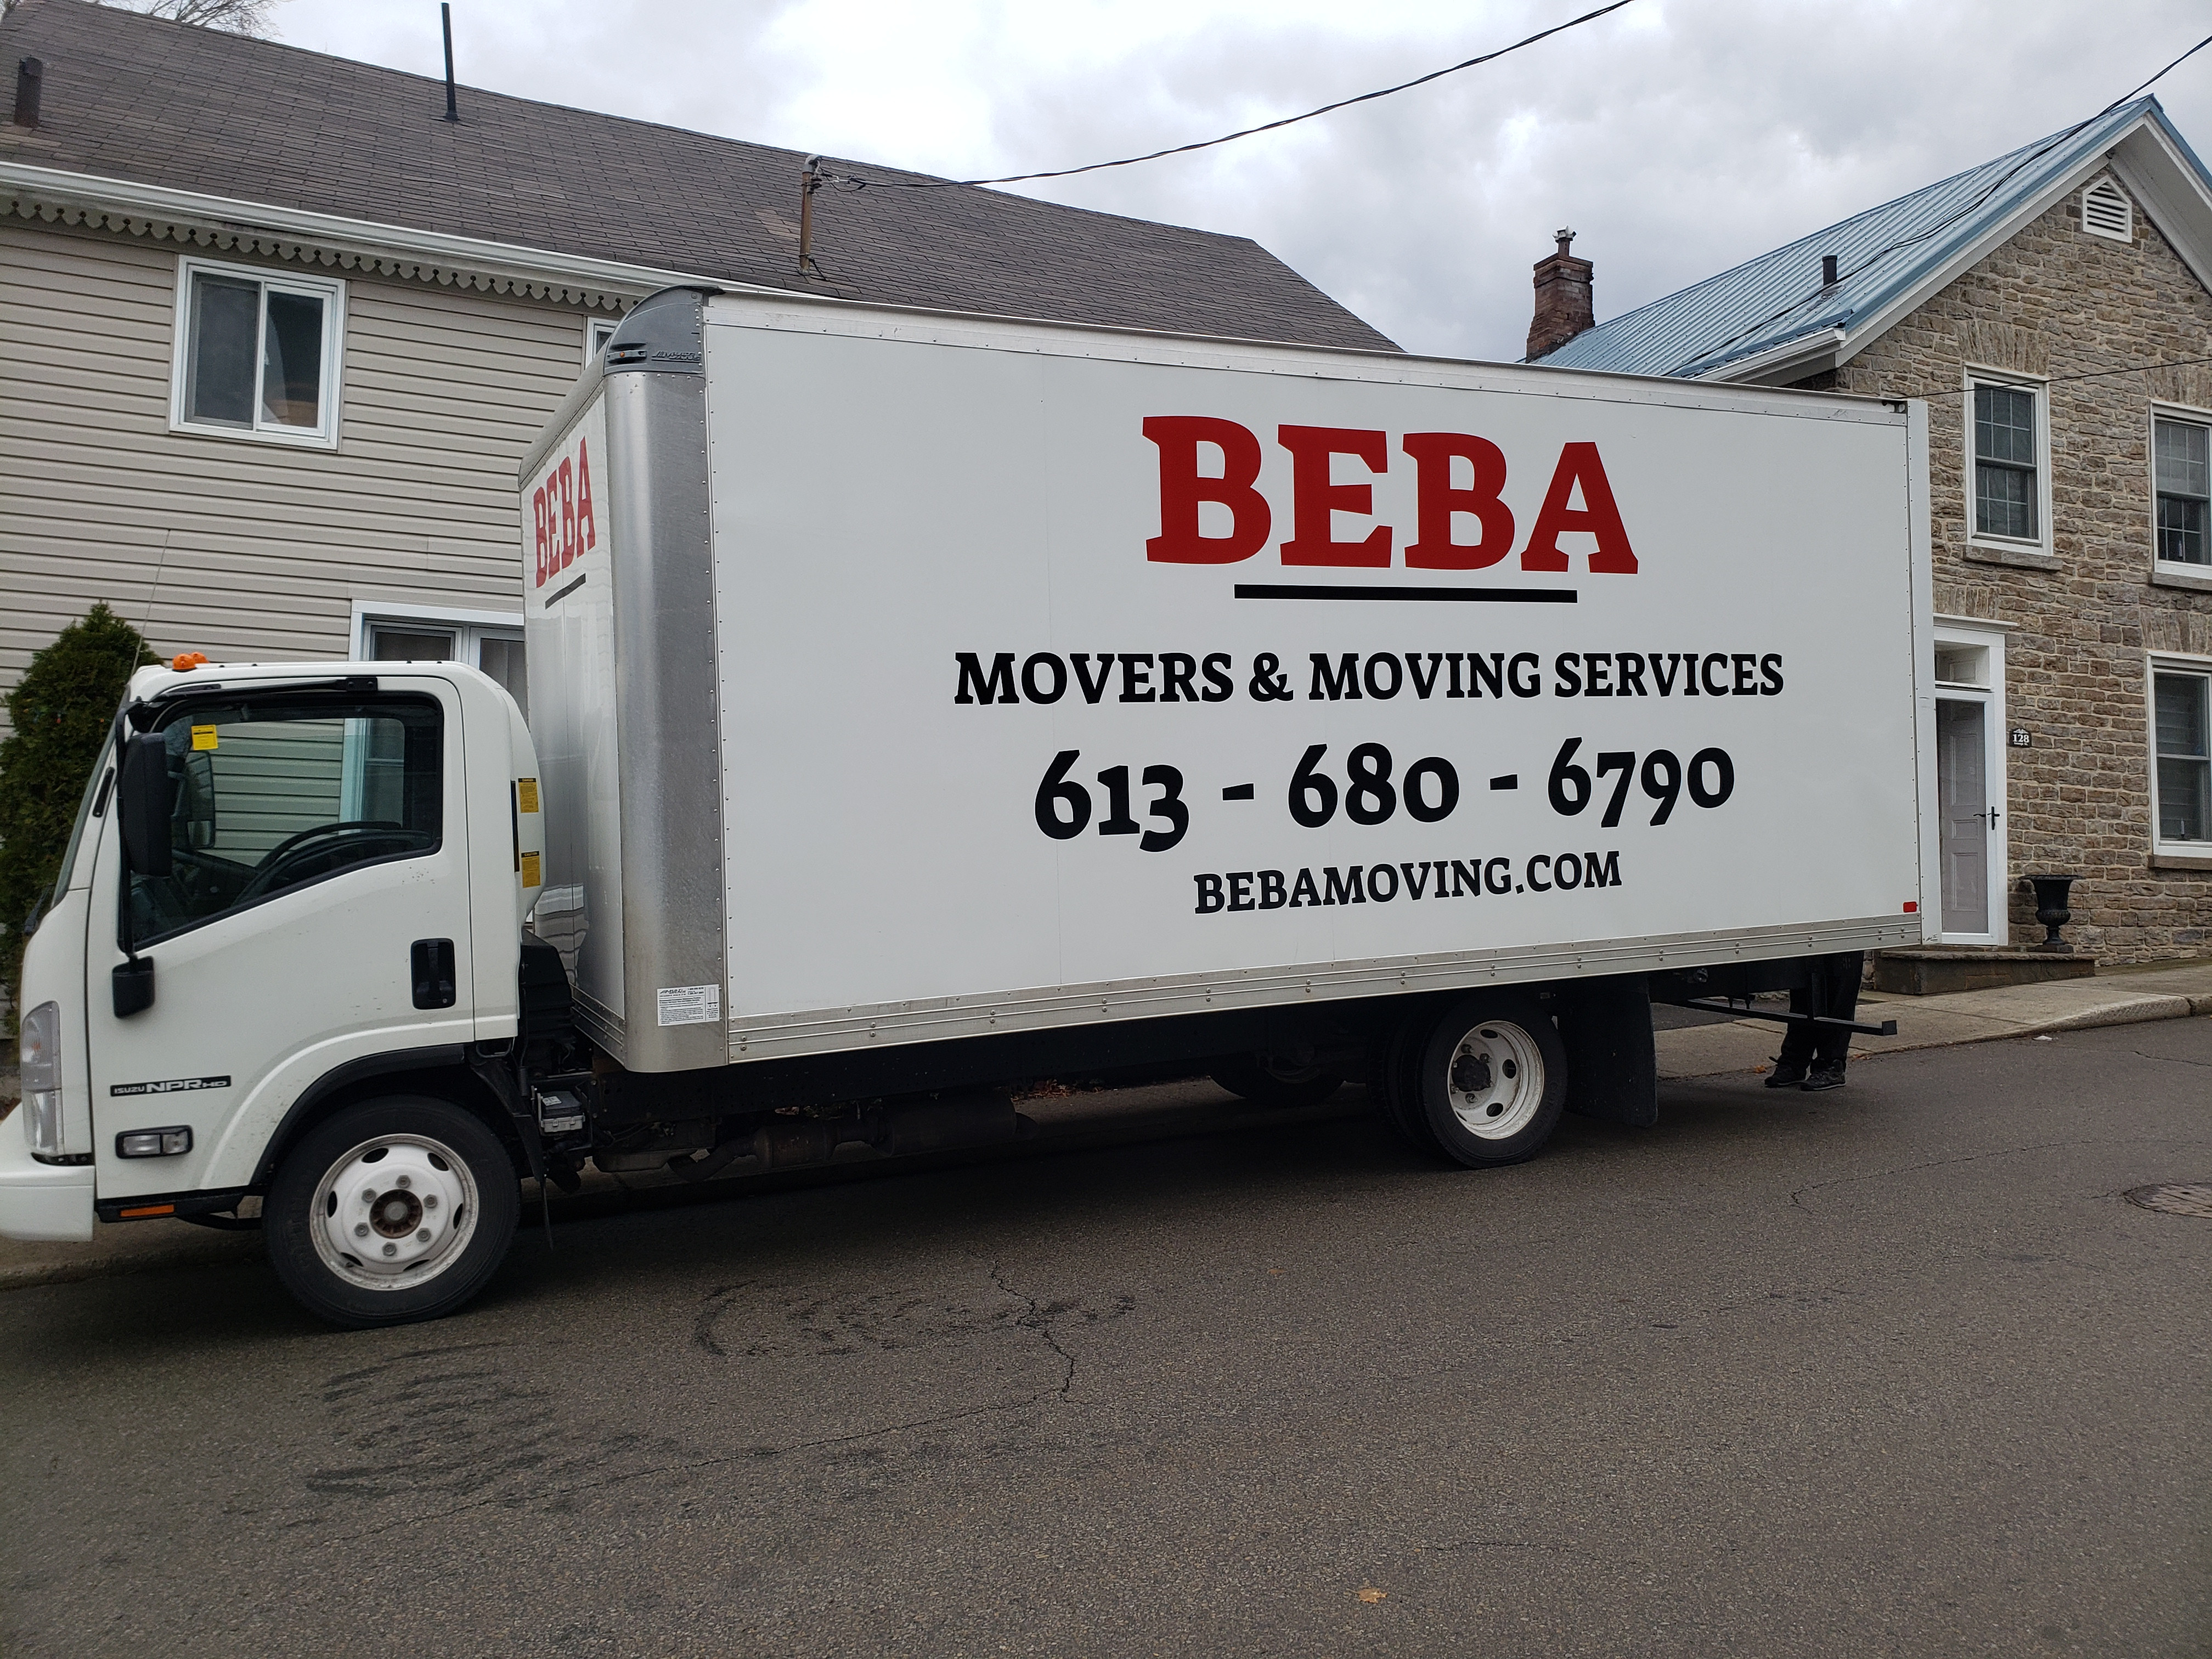 2 Movers with a truck